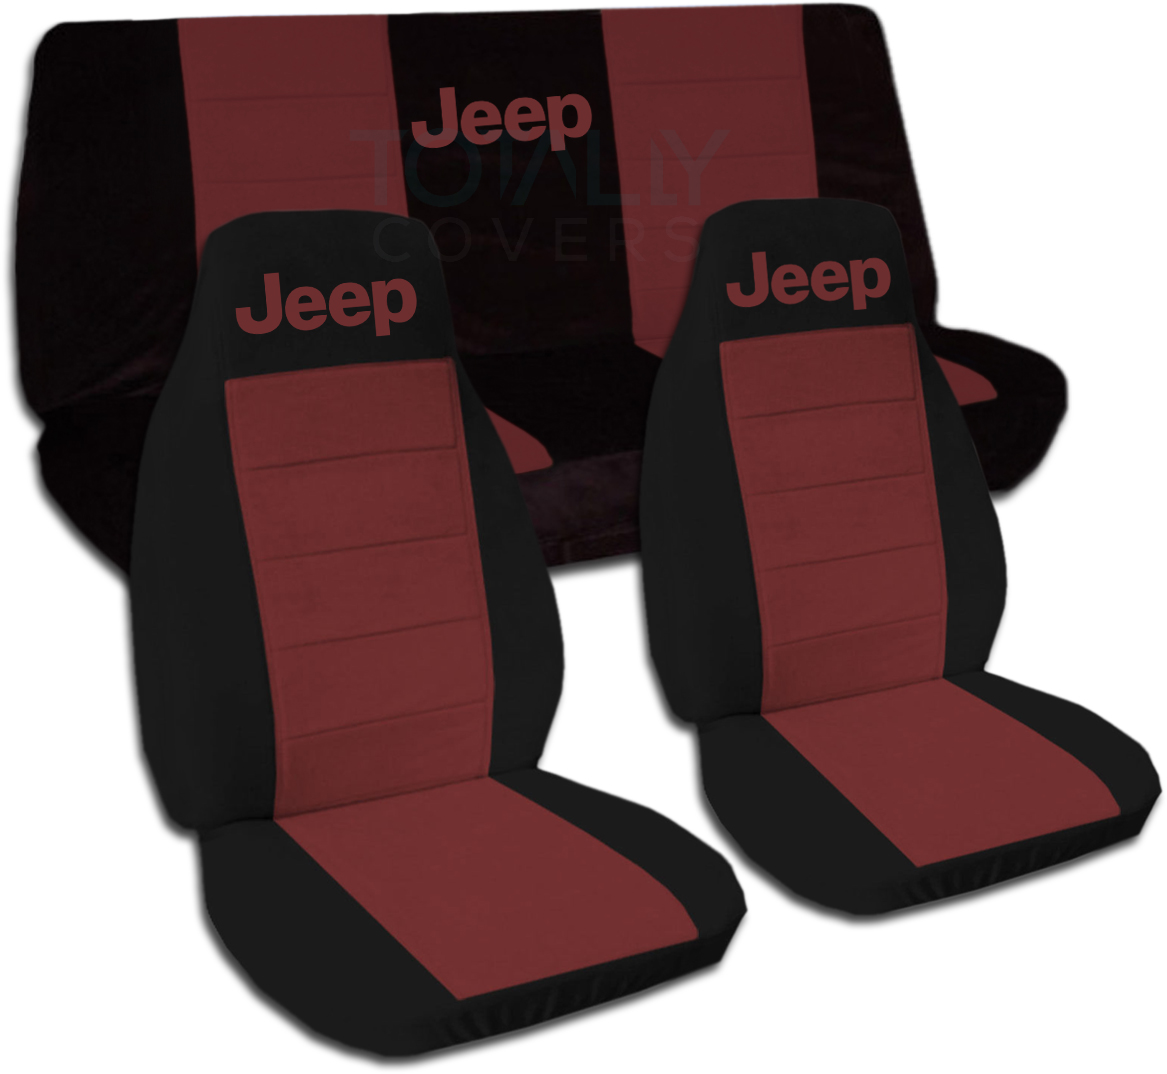 Jeep Wrangler Seat Covers >> Details About Jeep Wrangler Yj Tj Jk Jl 1987 2019 Two Tone Seat Covers W Logo Front Rear Set